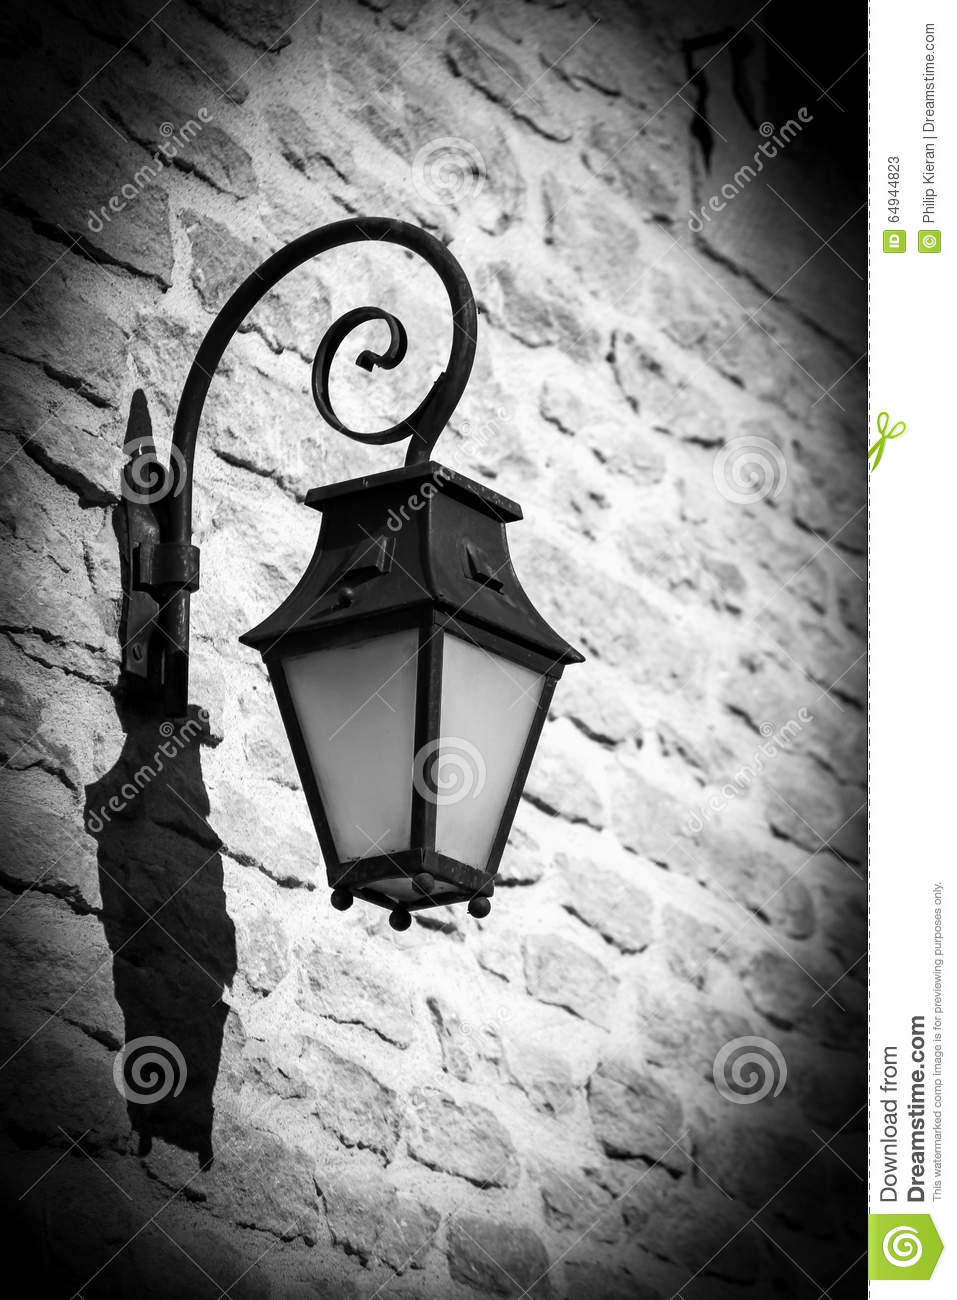 old street light in black and white stock photo image 64944823. Black Bedroom Furniture Sets. Home Design Ideas